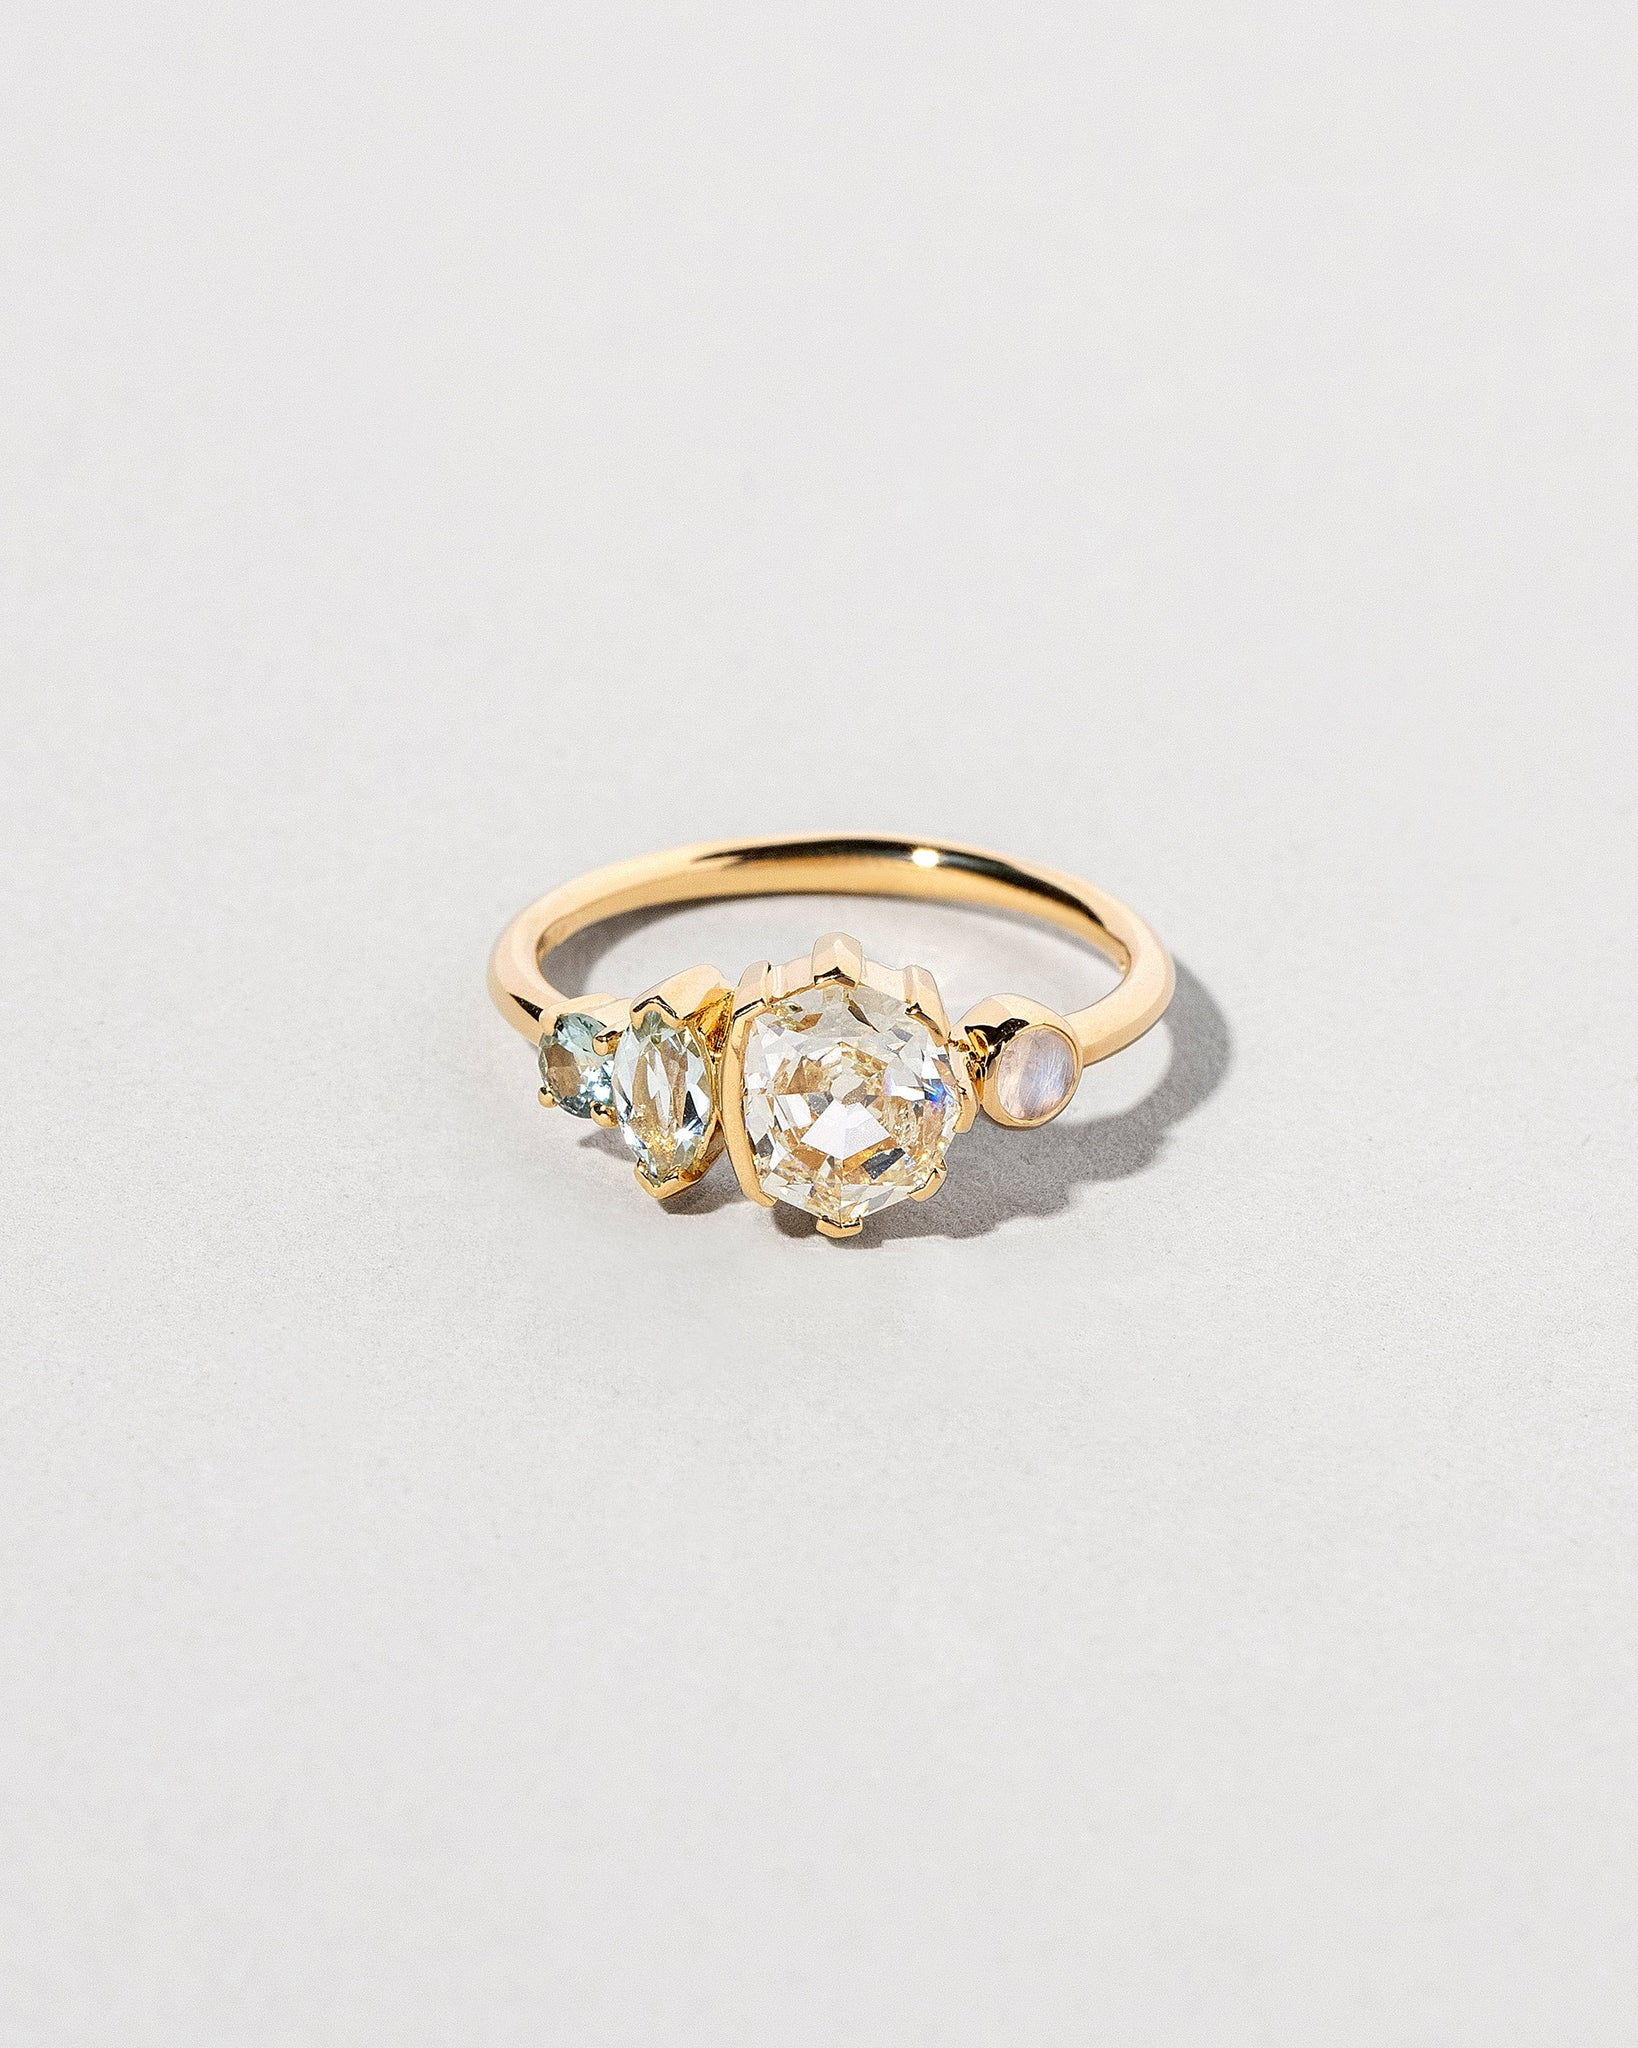 Custom Octagonal Old Mine Cut Diamond Line Cluster Ring